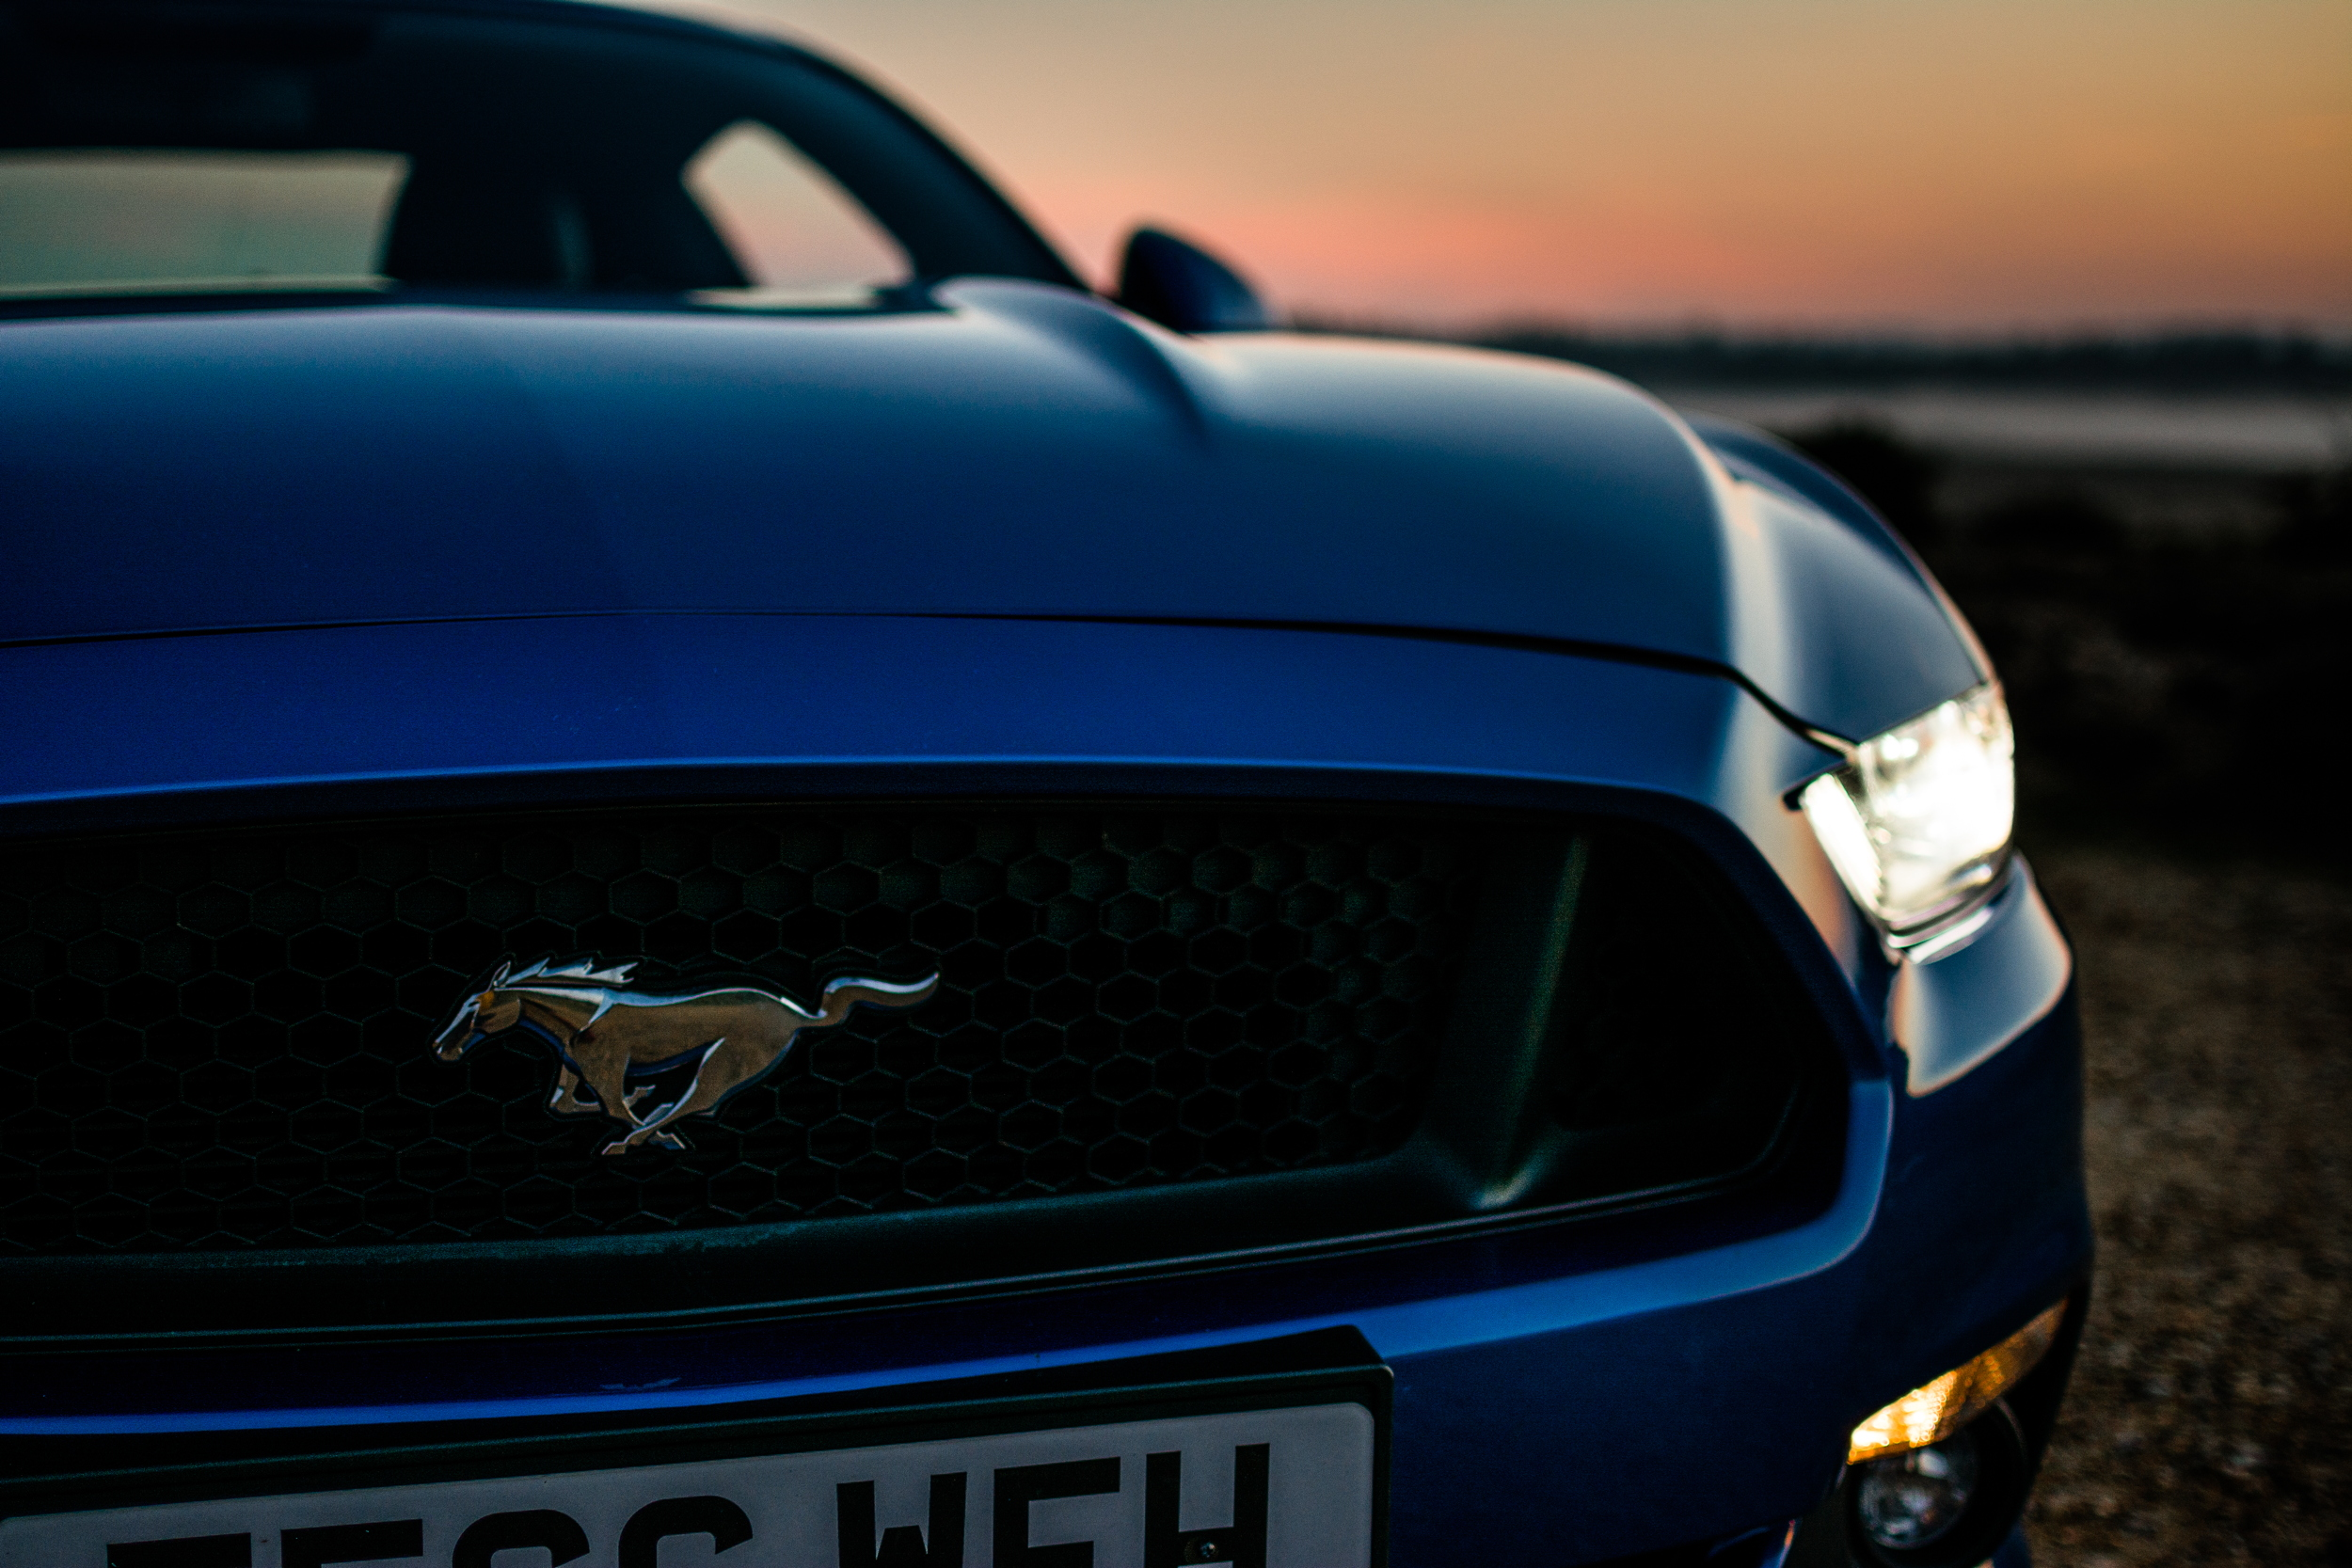 Ford Mustang front detail